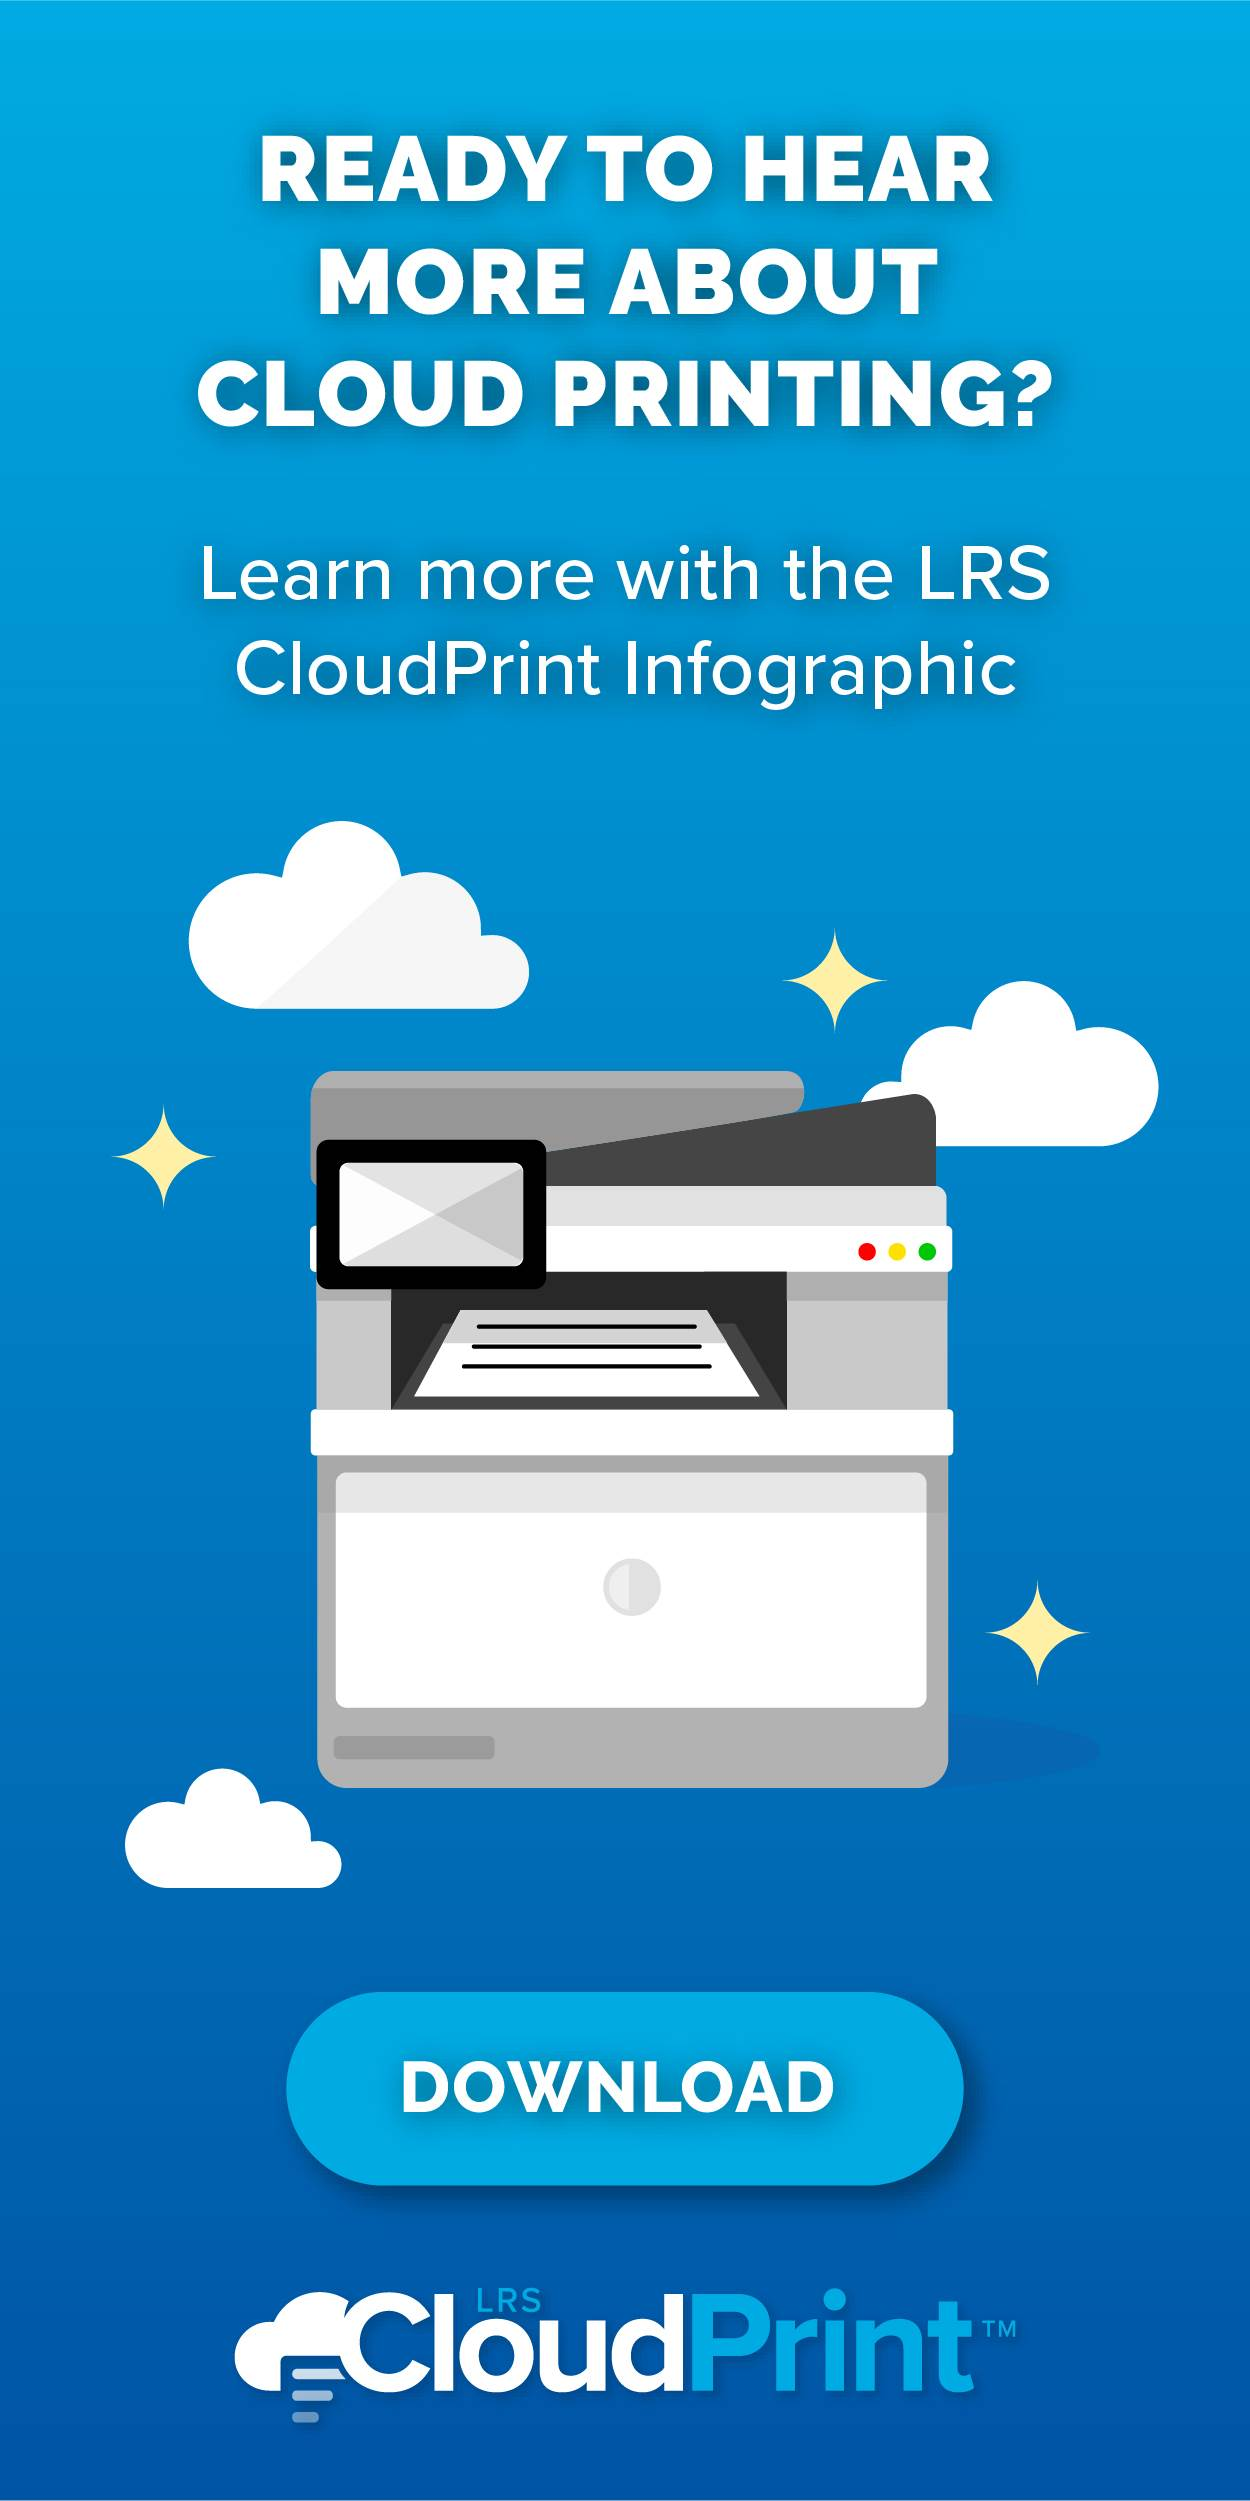 Ready to hear more about cloud printing? Download